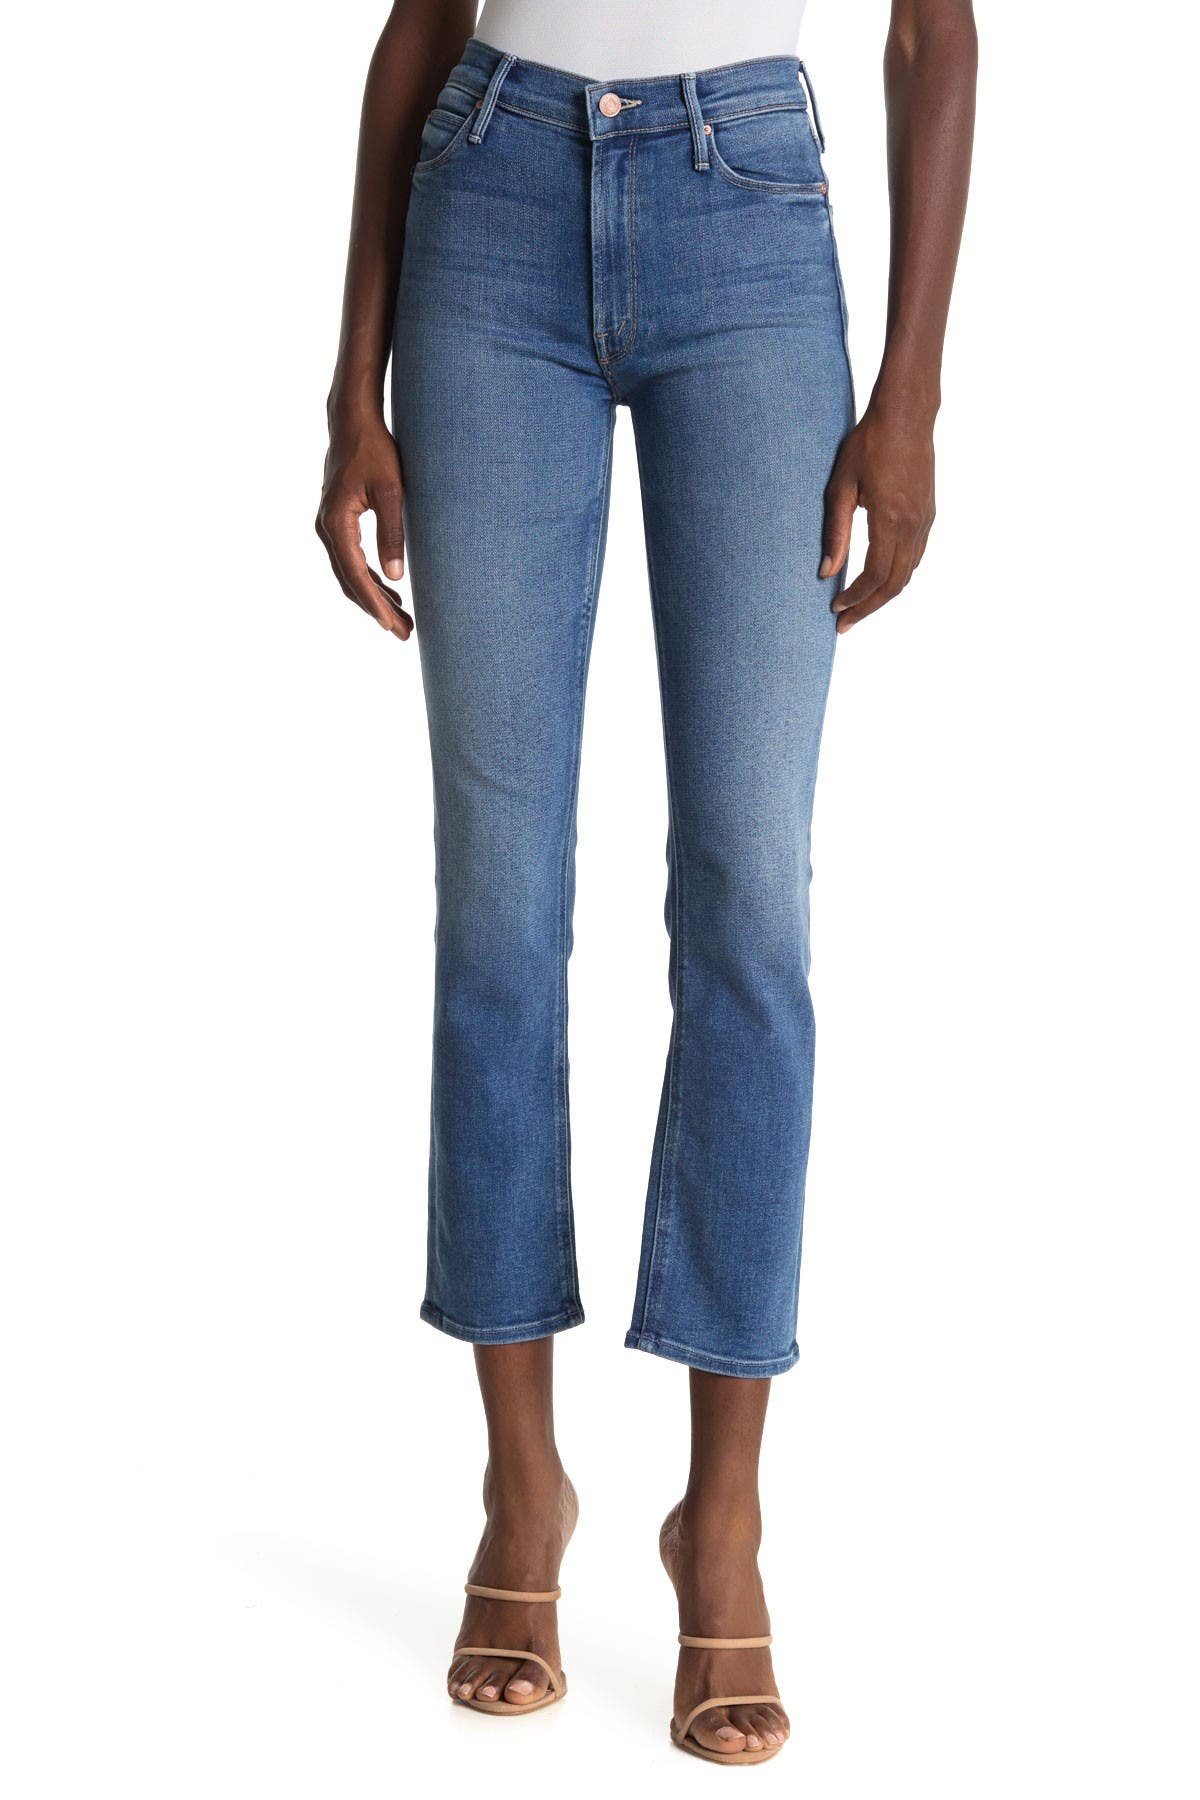 Image of MOTHER The Mid Rise Dazzler Ankle Jeans